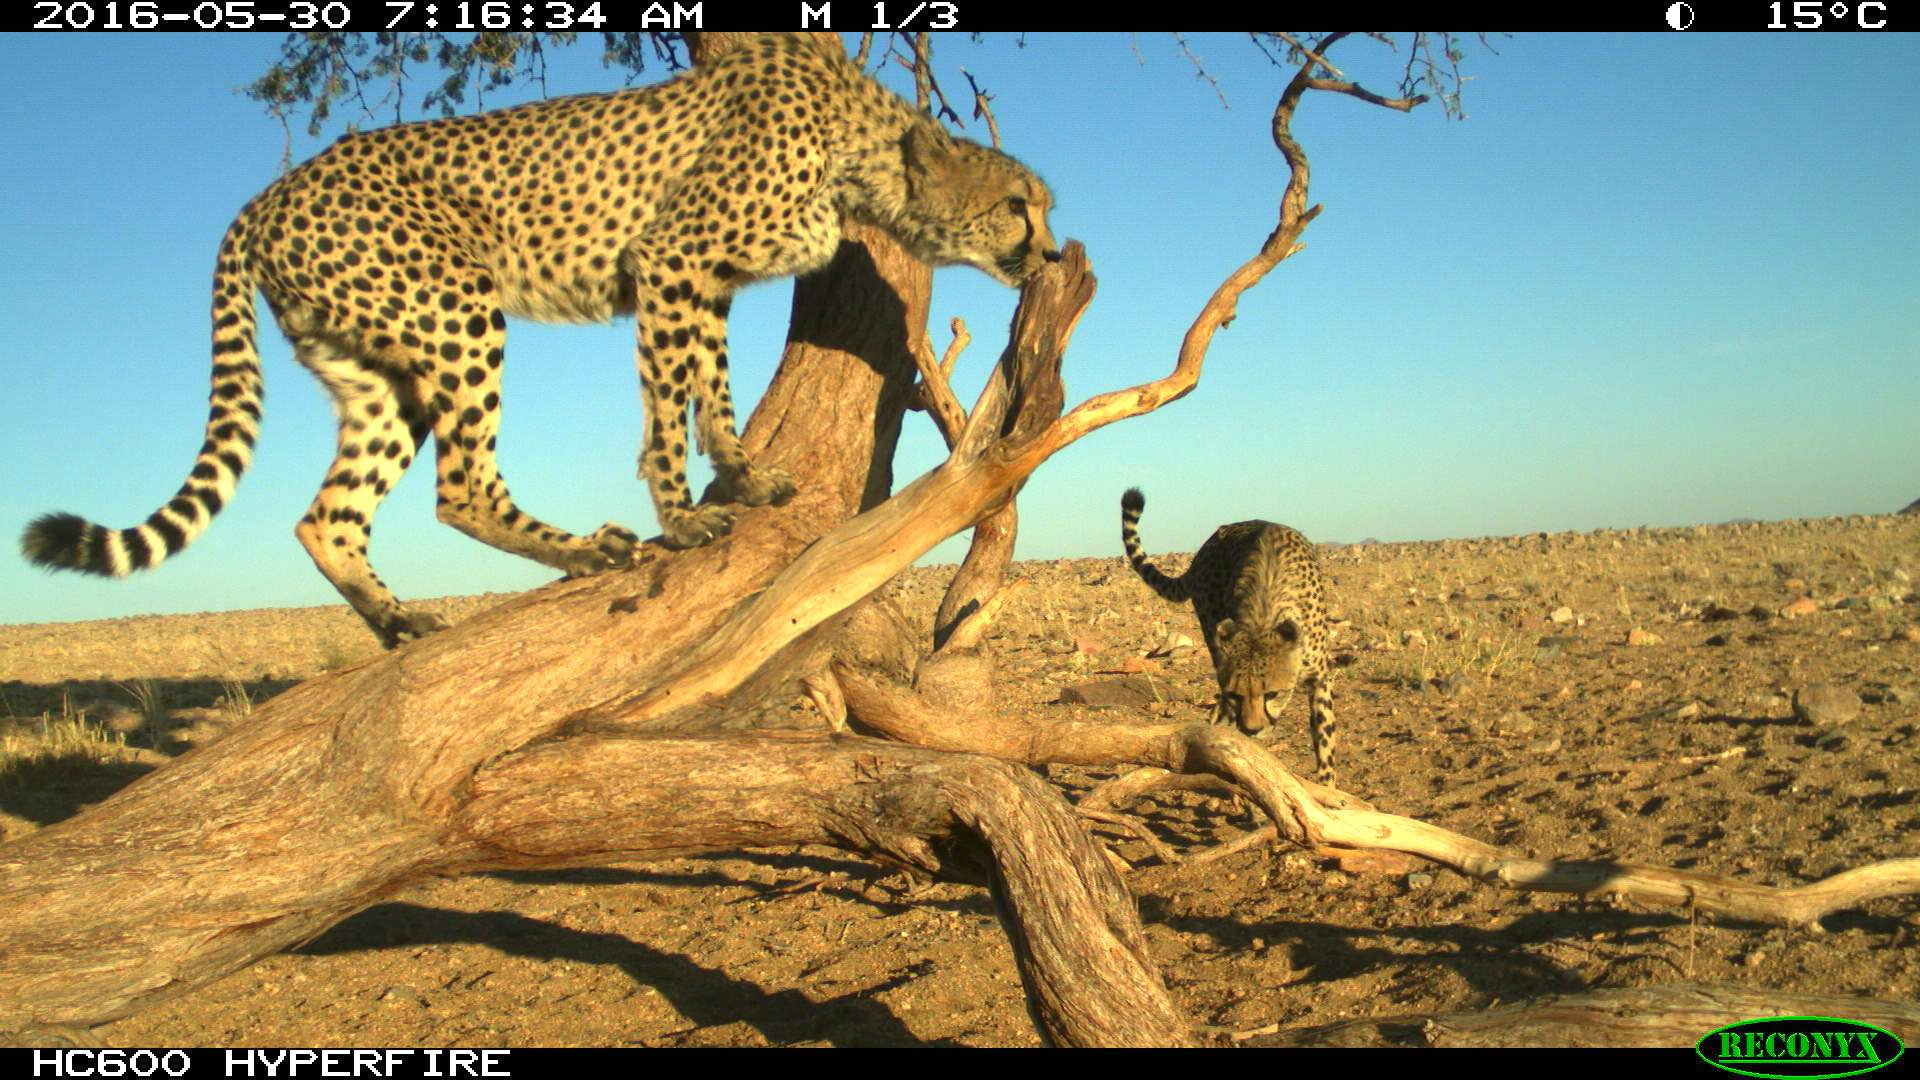 A camera trap photo showing two cheetahs clambering over a dead looking tree.